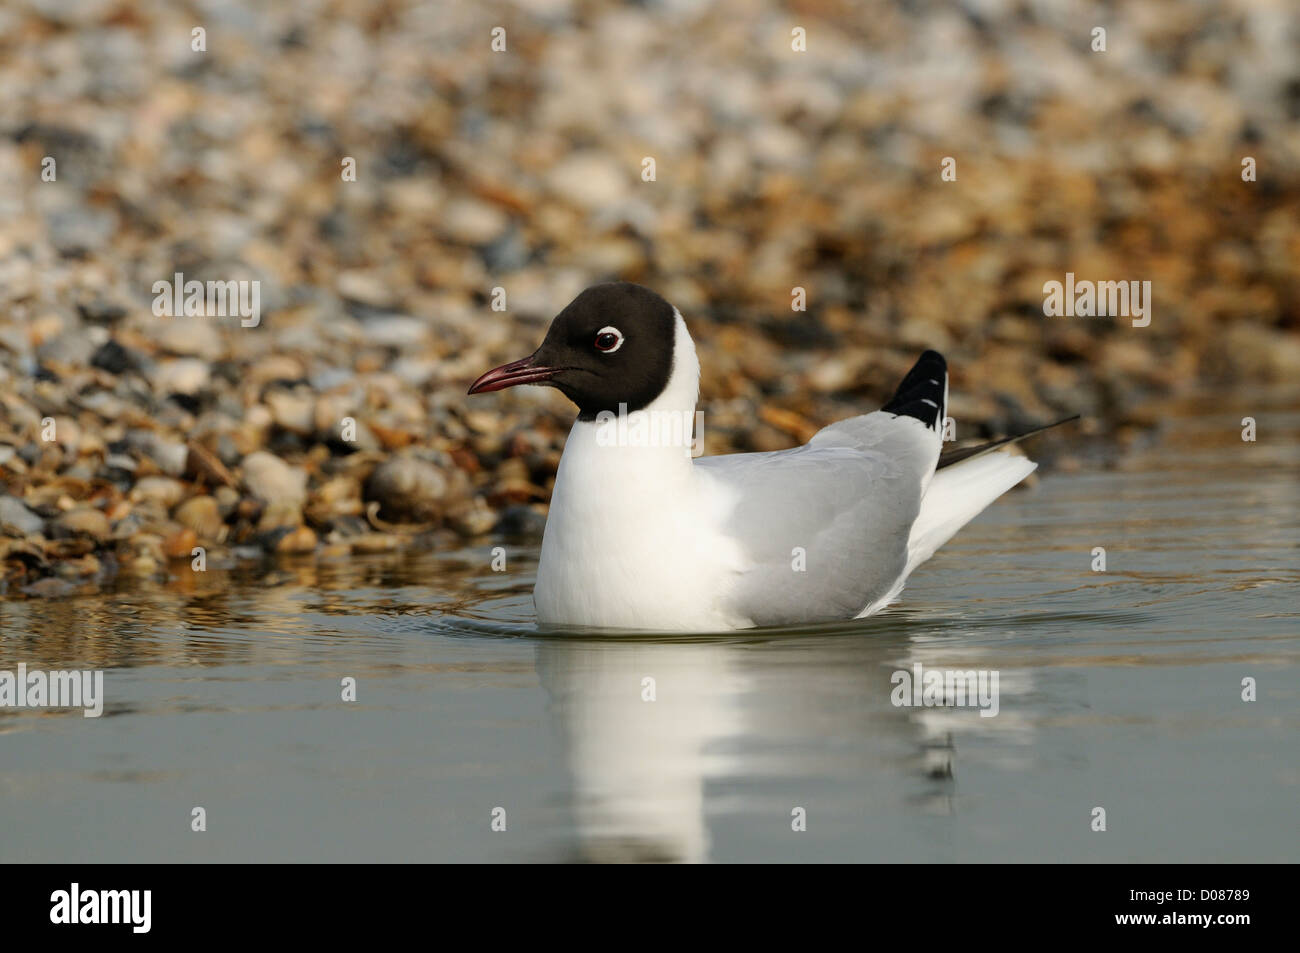 Black-headed Gull (Larus ridibundus) swimming on water, Holland, May - Stock Image